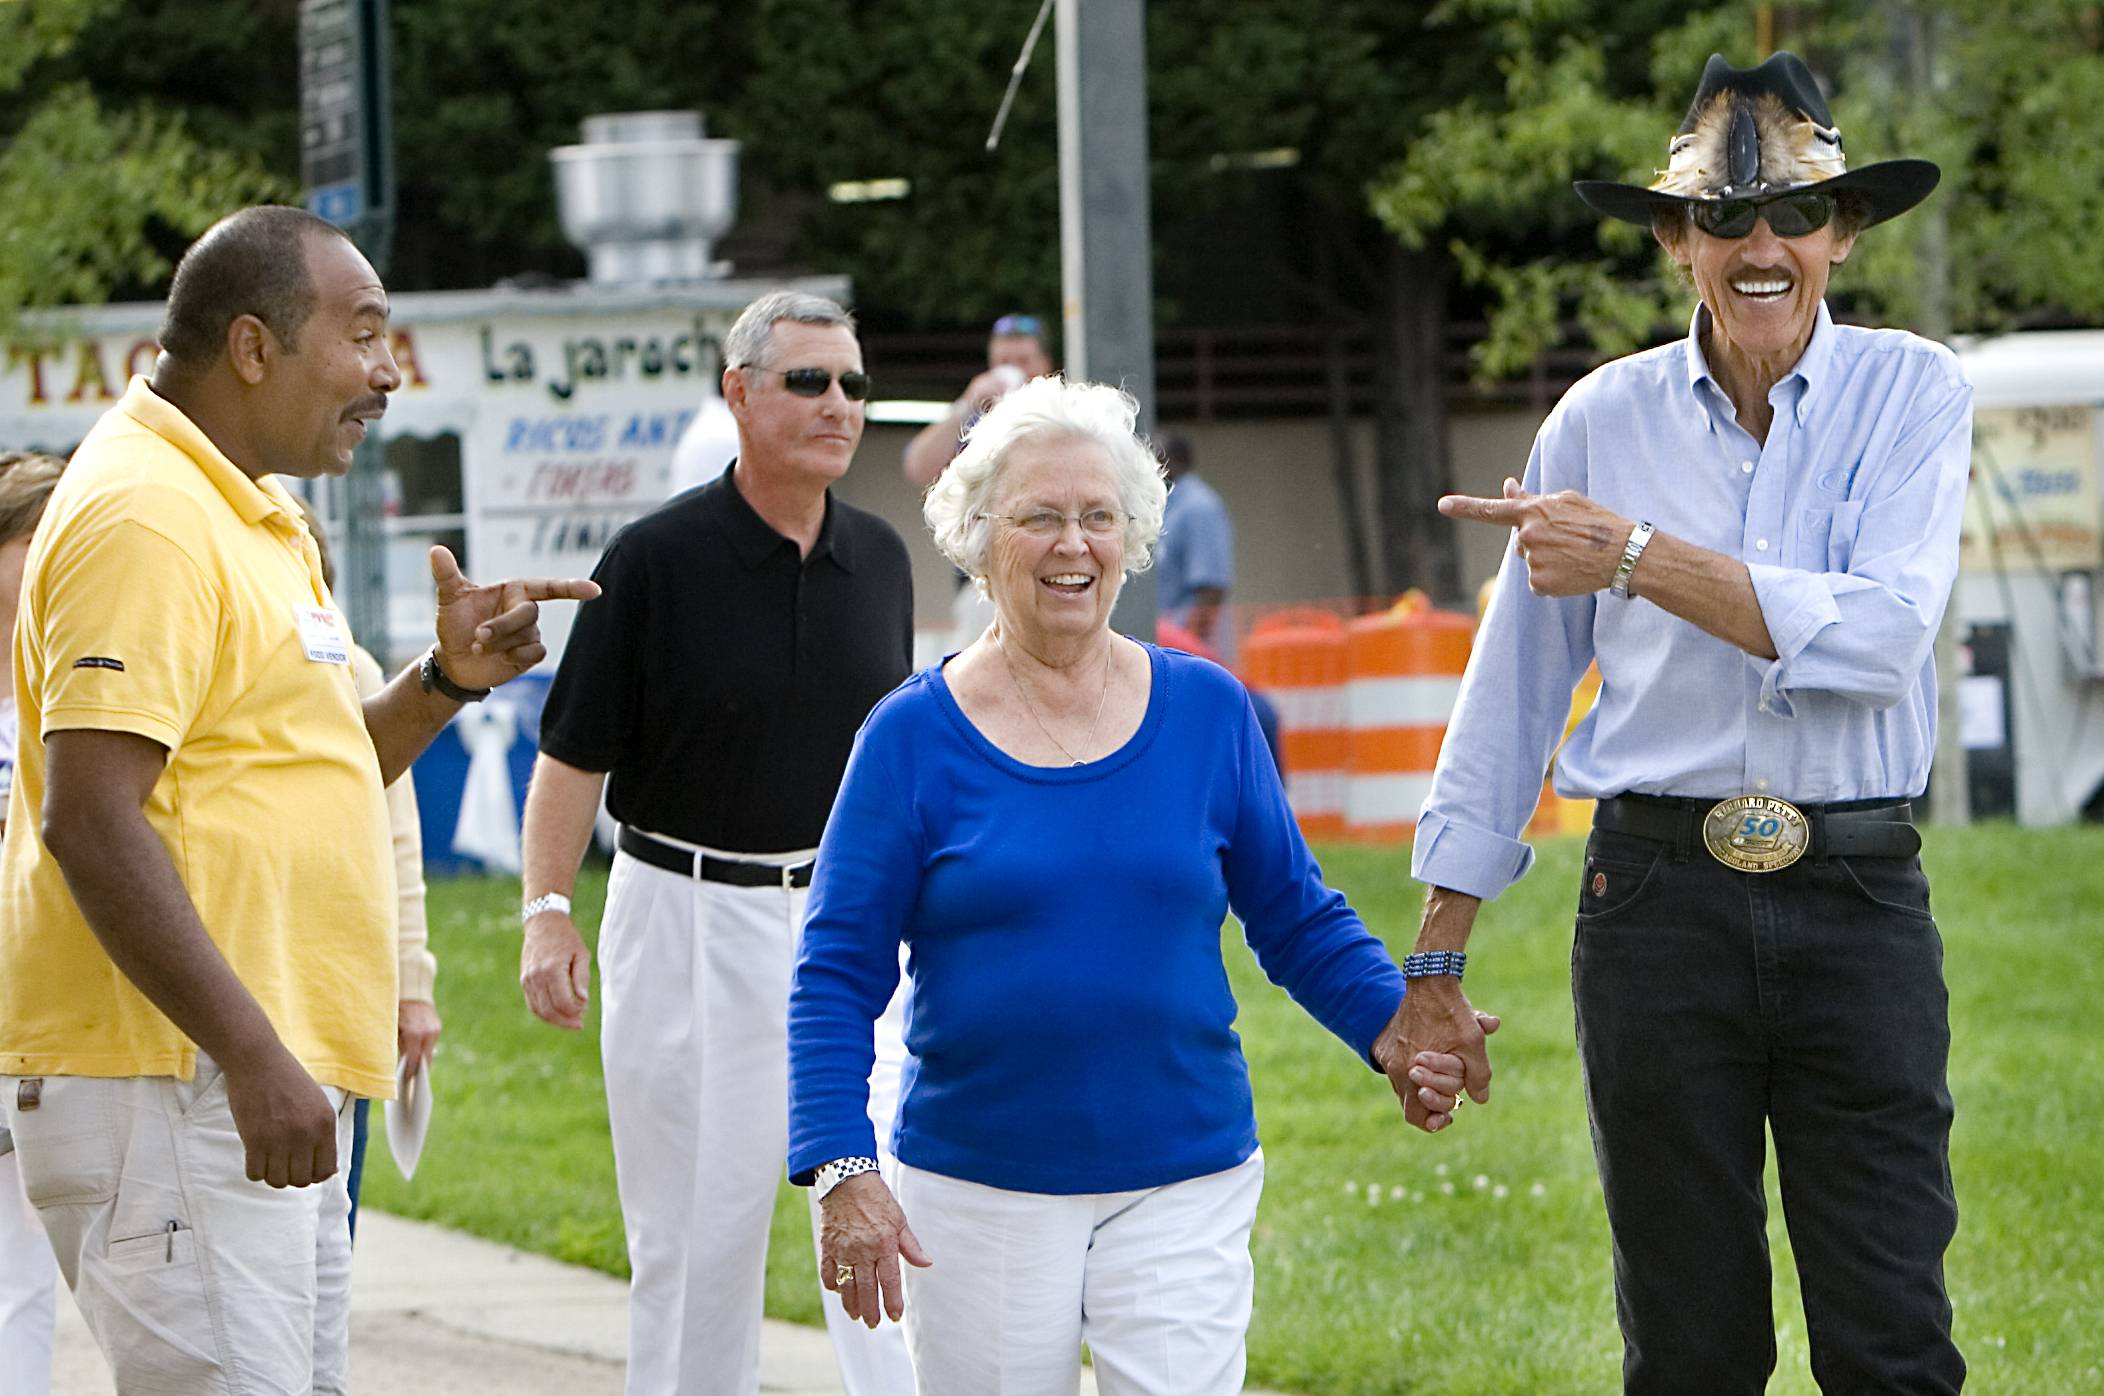 NASCAR Hall of Famer driver Richard Petty, holding the hand of his wife Lynda center, are recognized by fans in Greensboro, N.C. Lynda Petty  died Tuesday.